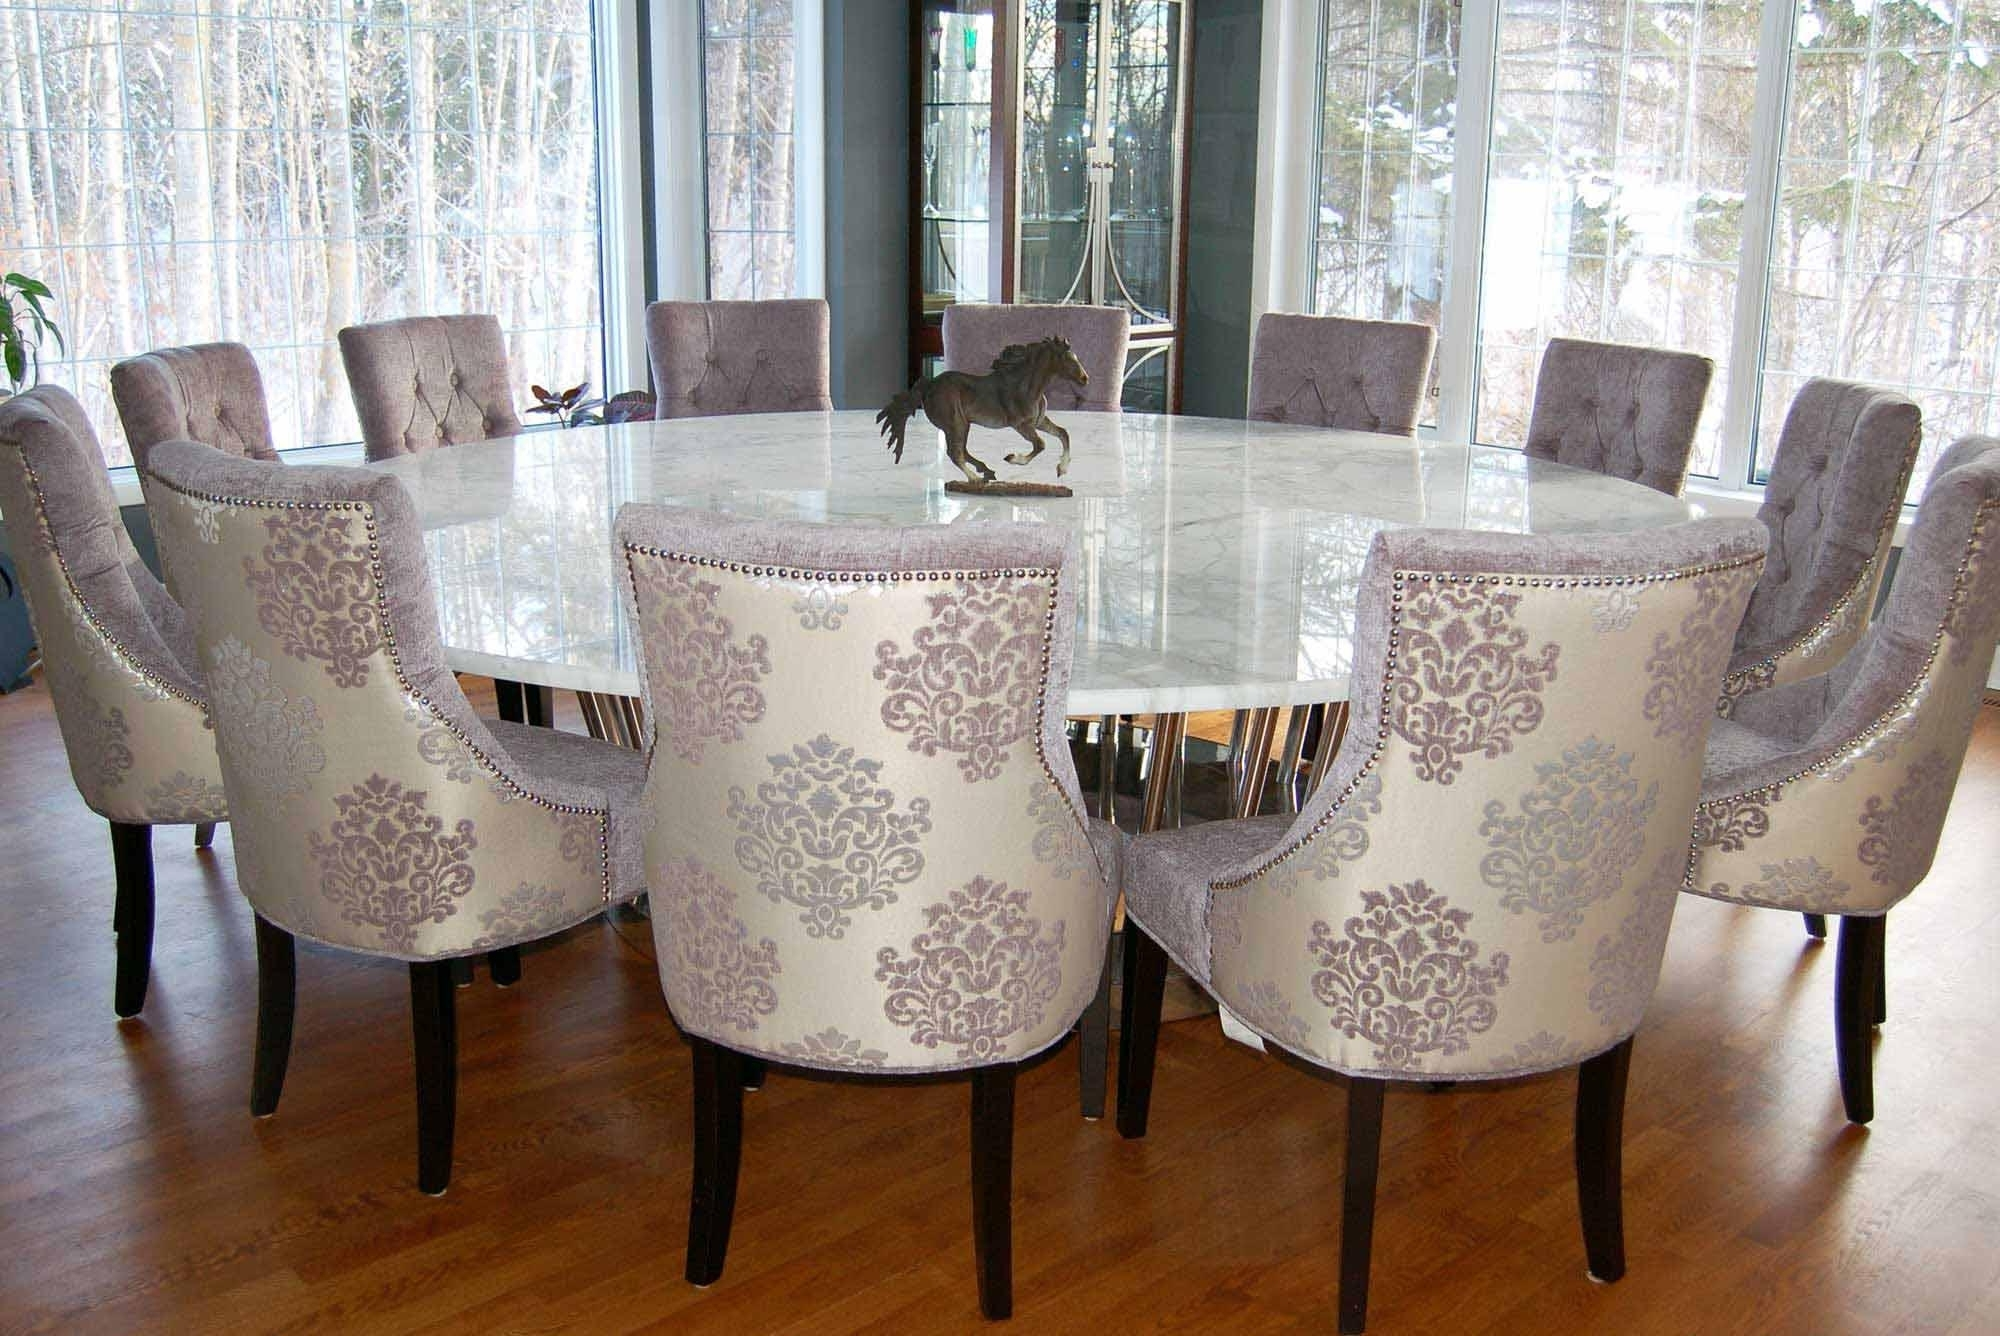 6 Person Round Dining Tables Intended For Recent 12 Seater Round Dining Table And Chairs – Round Table Ideas (Gallery 5 of 25)